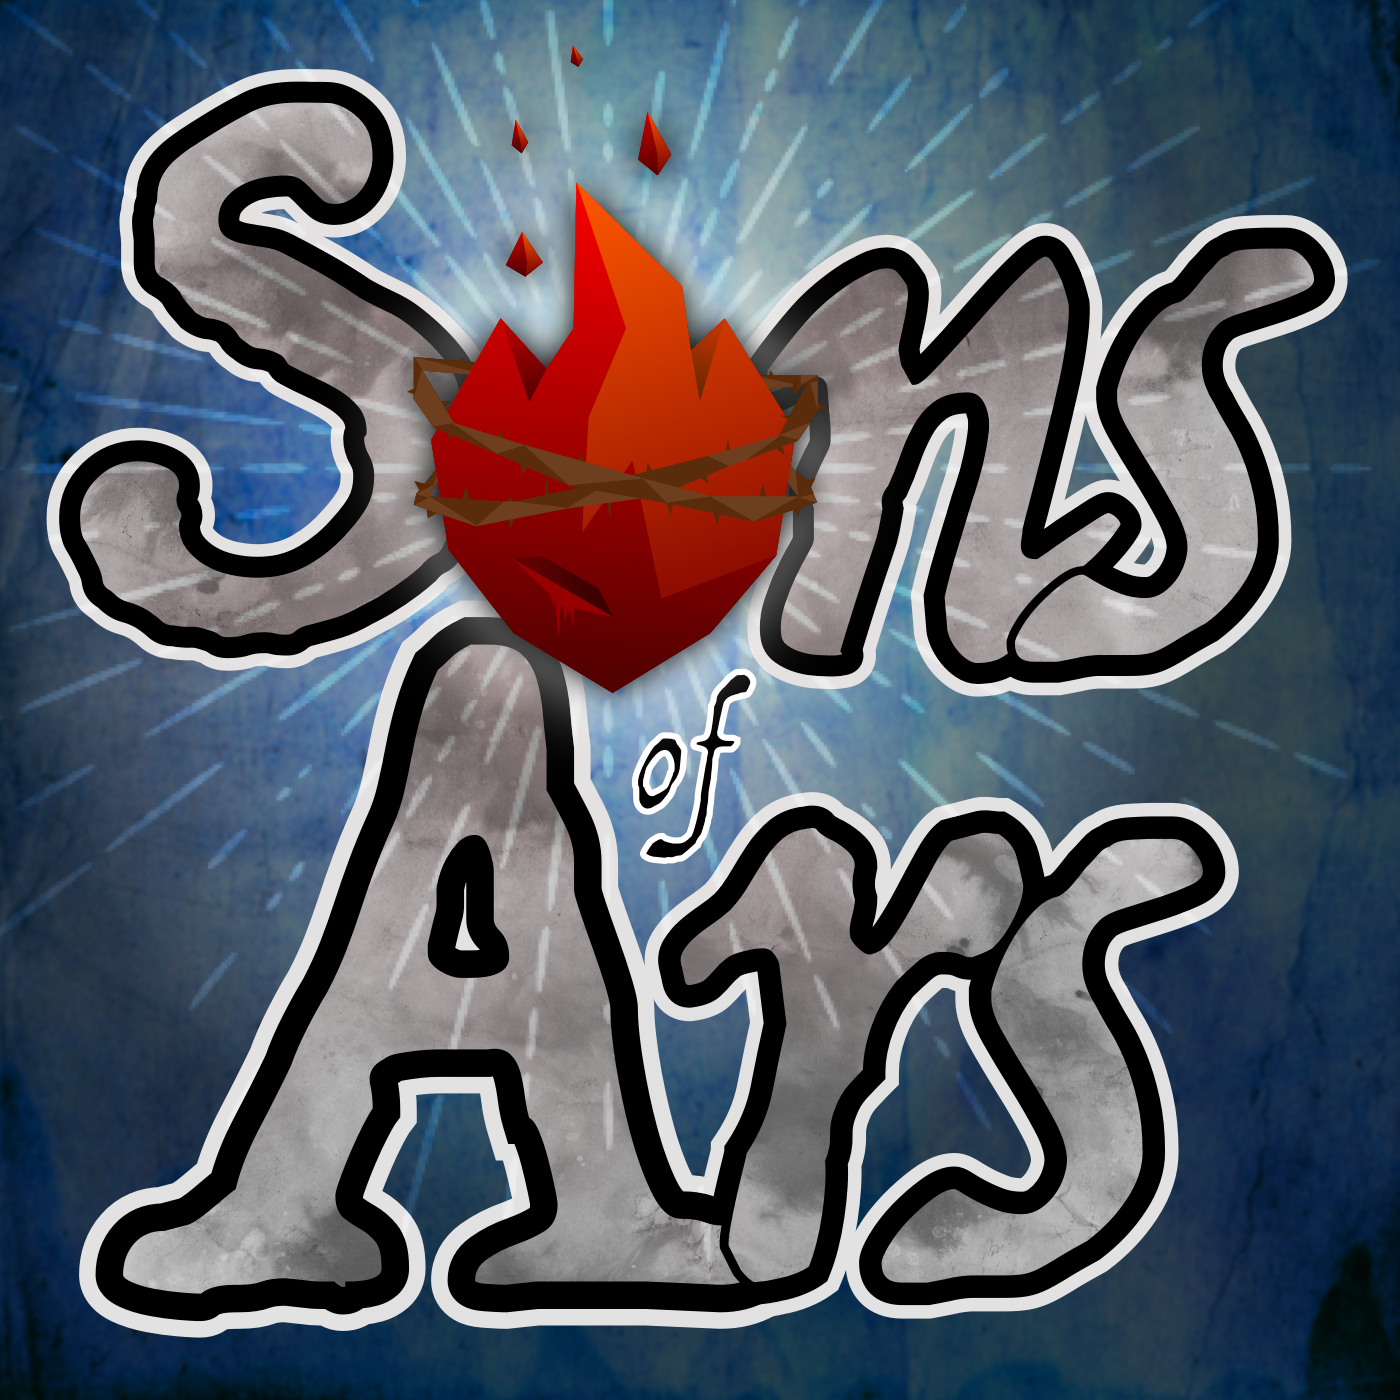 Sons of Ars show art